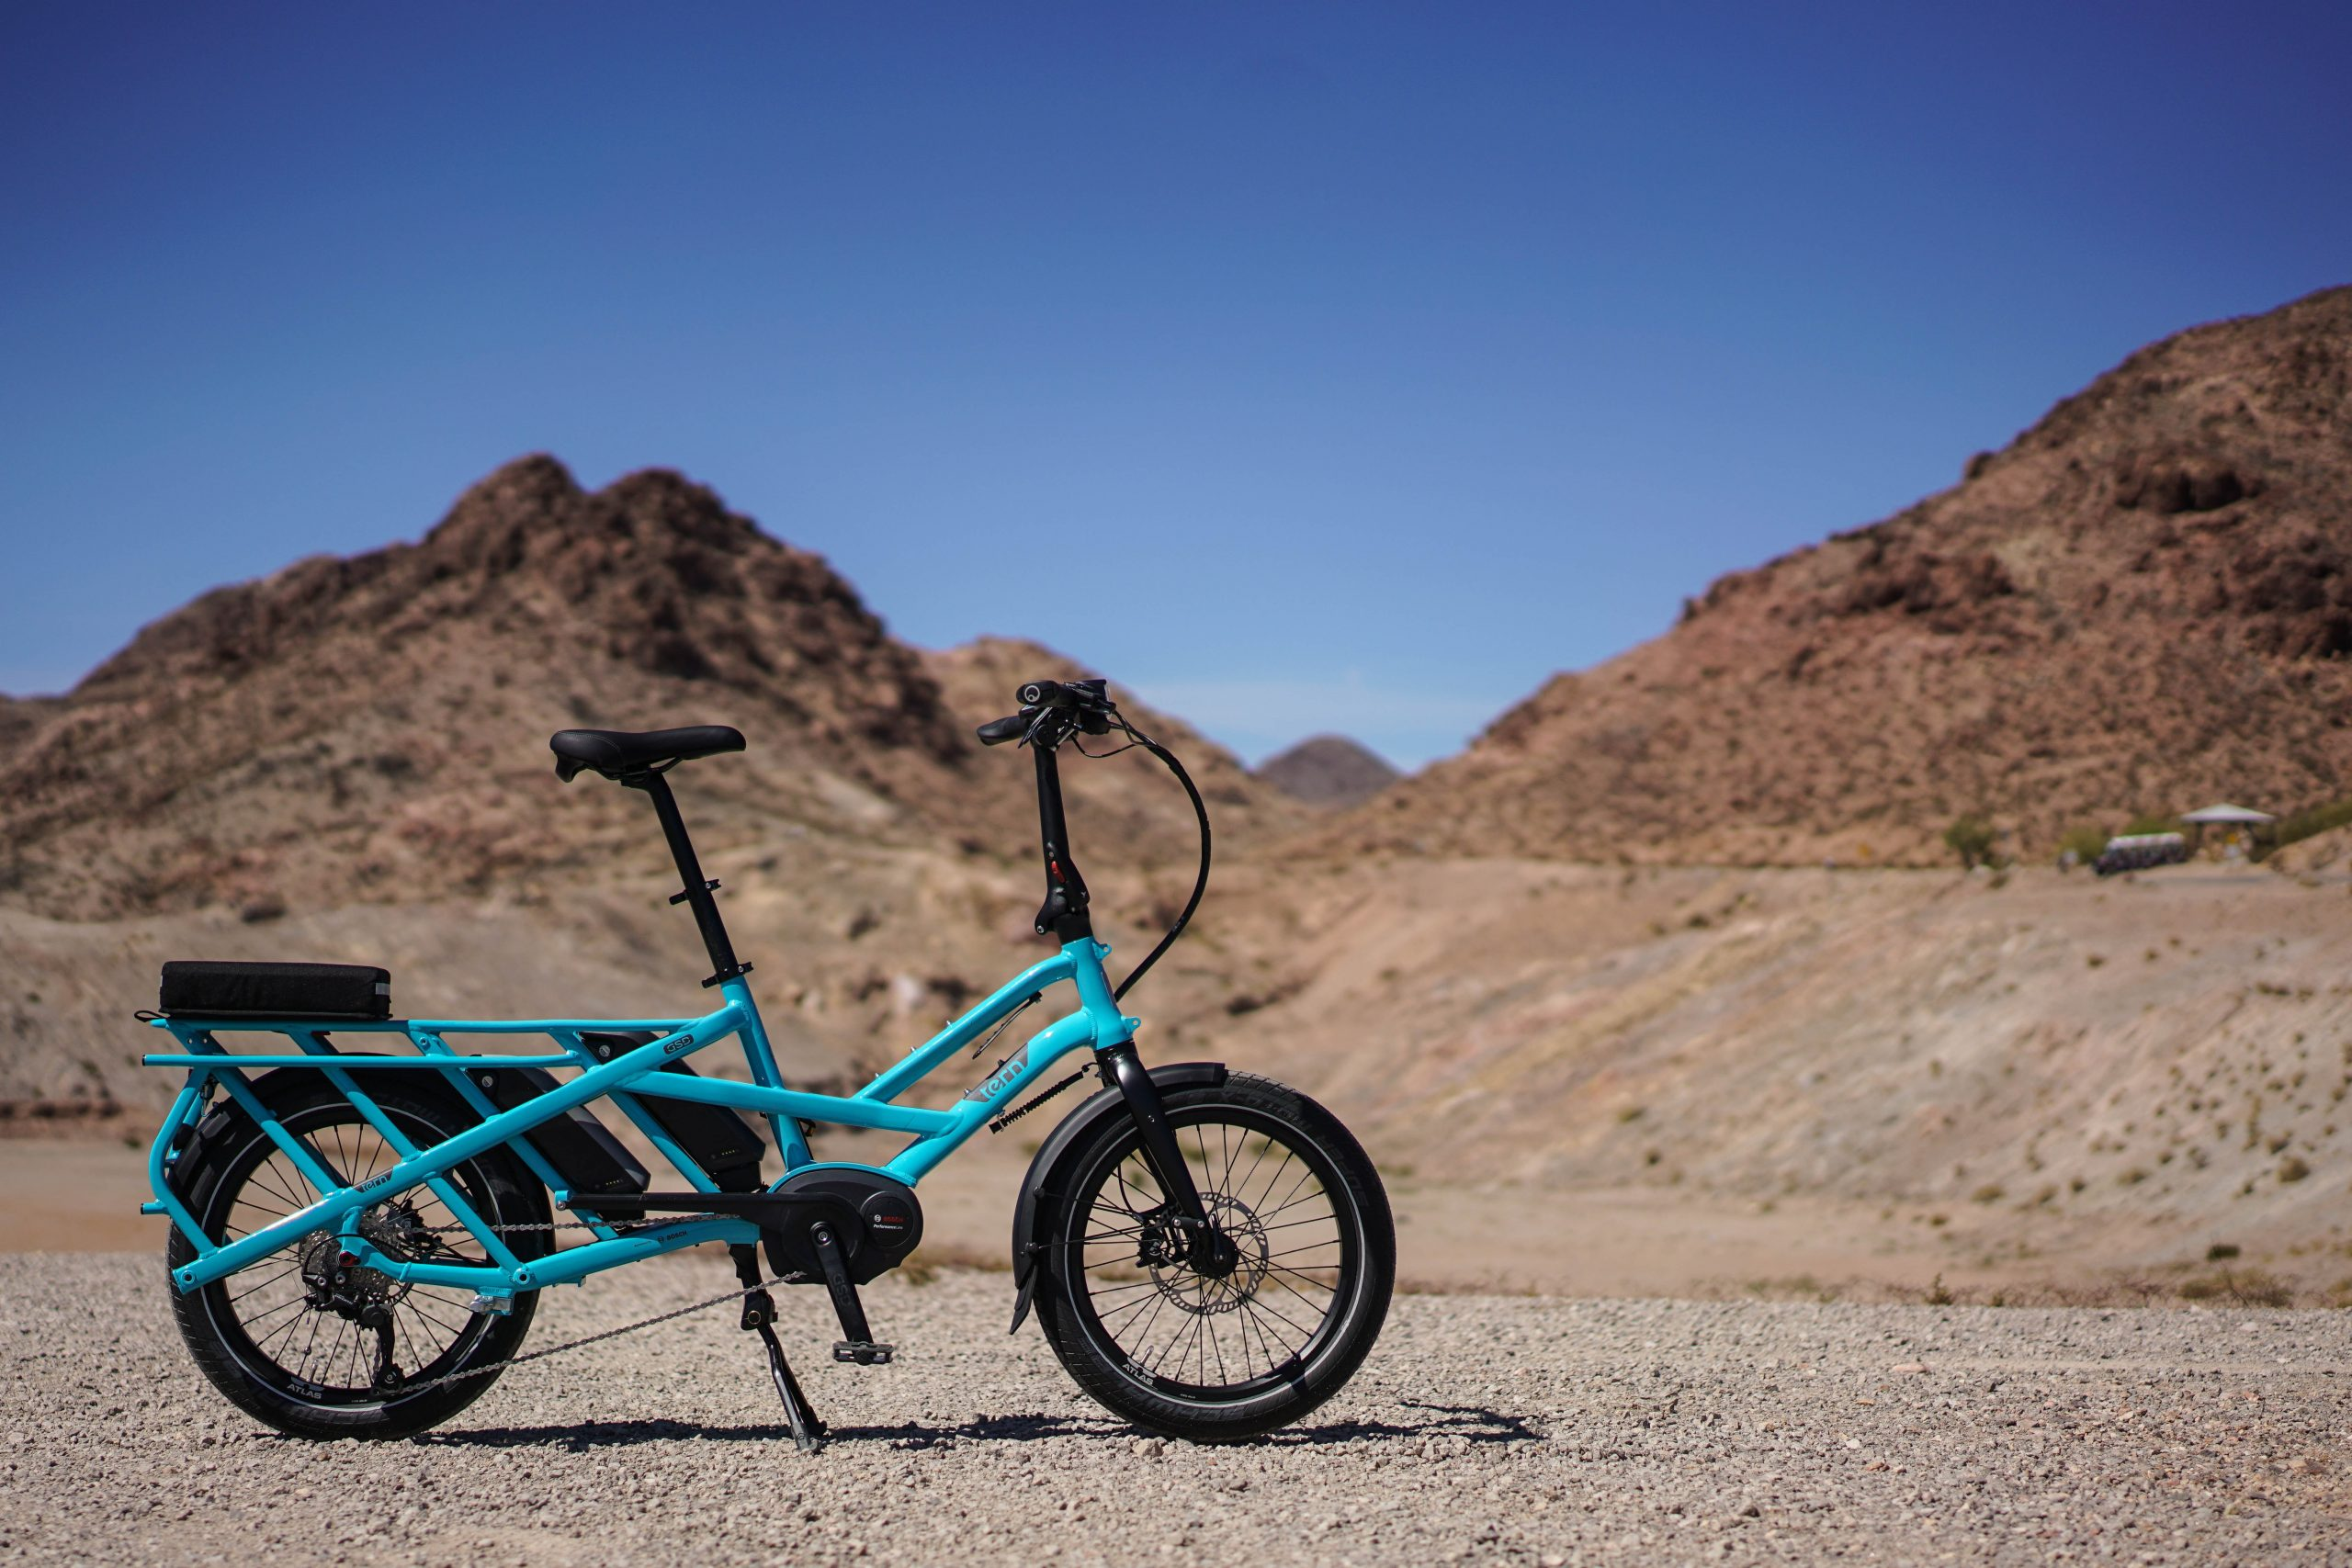 galen crout tNTvX60SN4o unsplash 1 scaled 10 Cargo Bike Selections